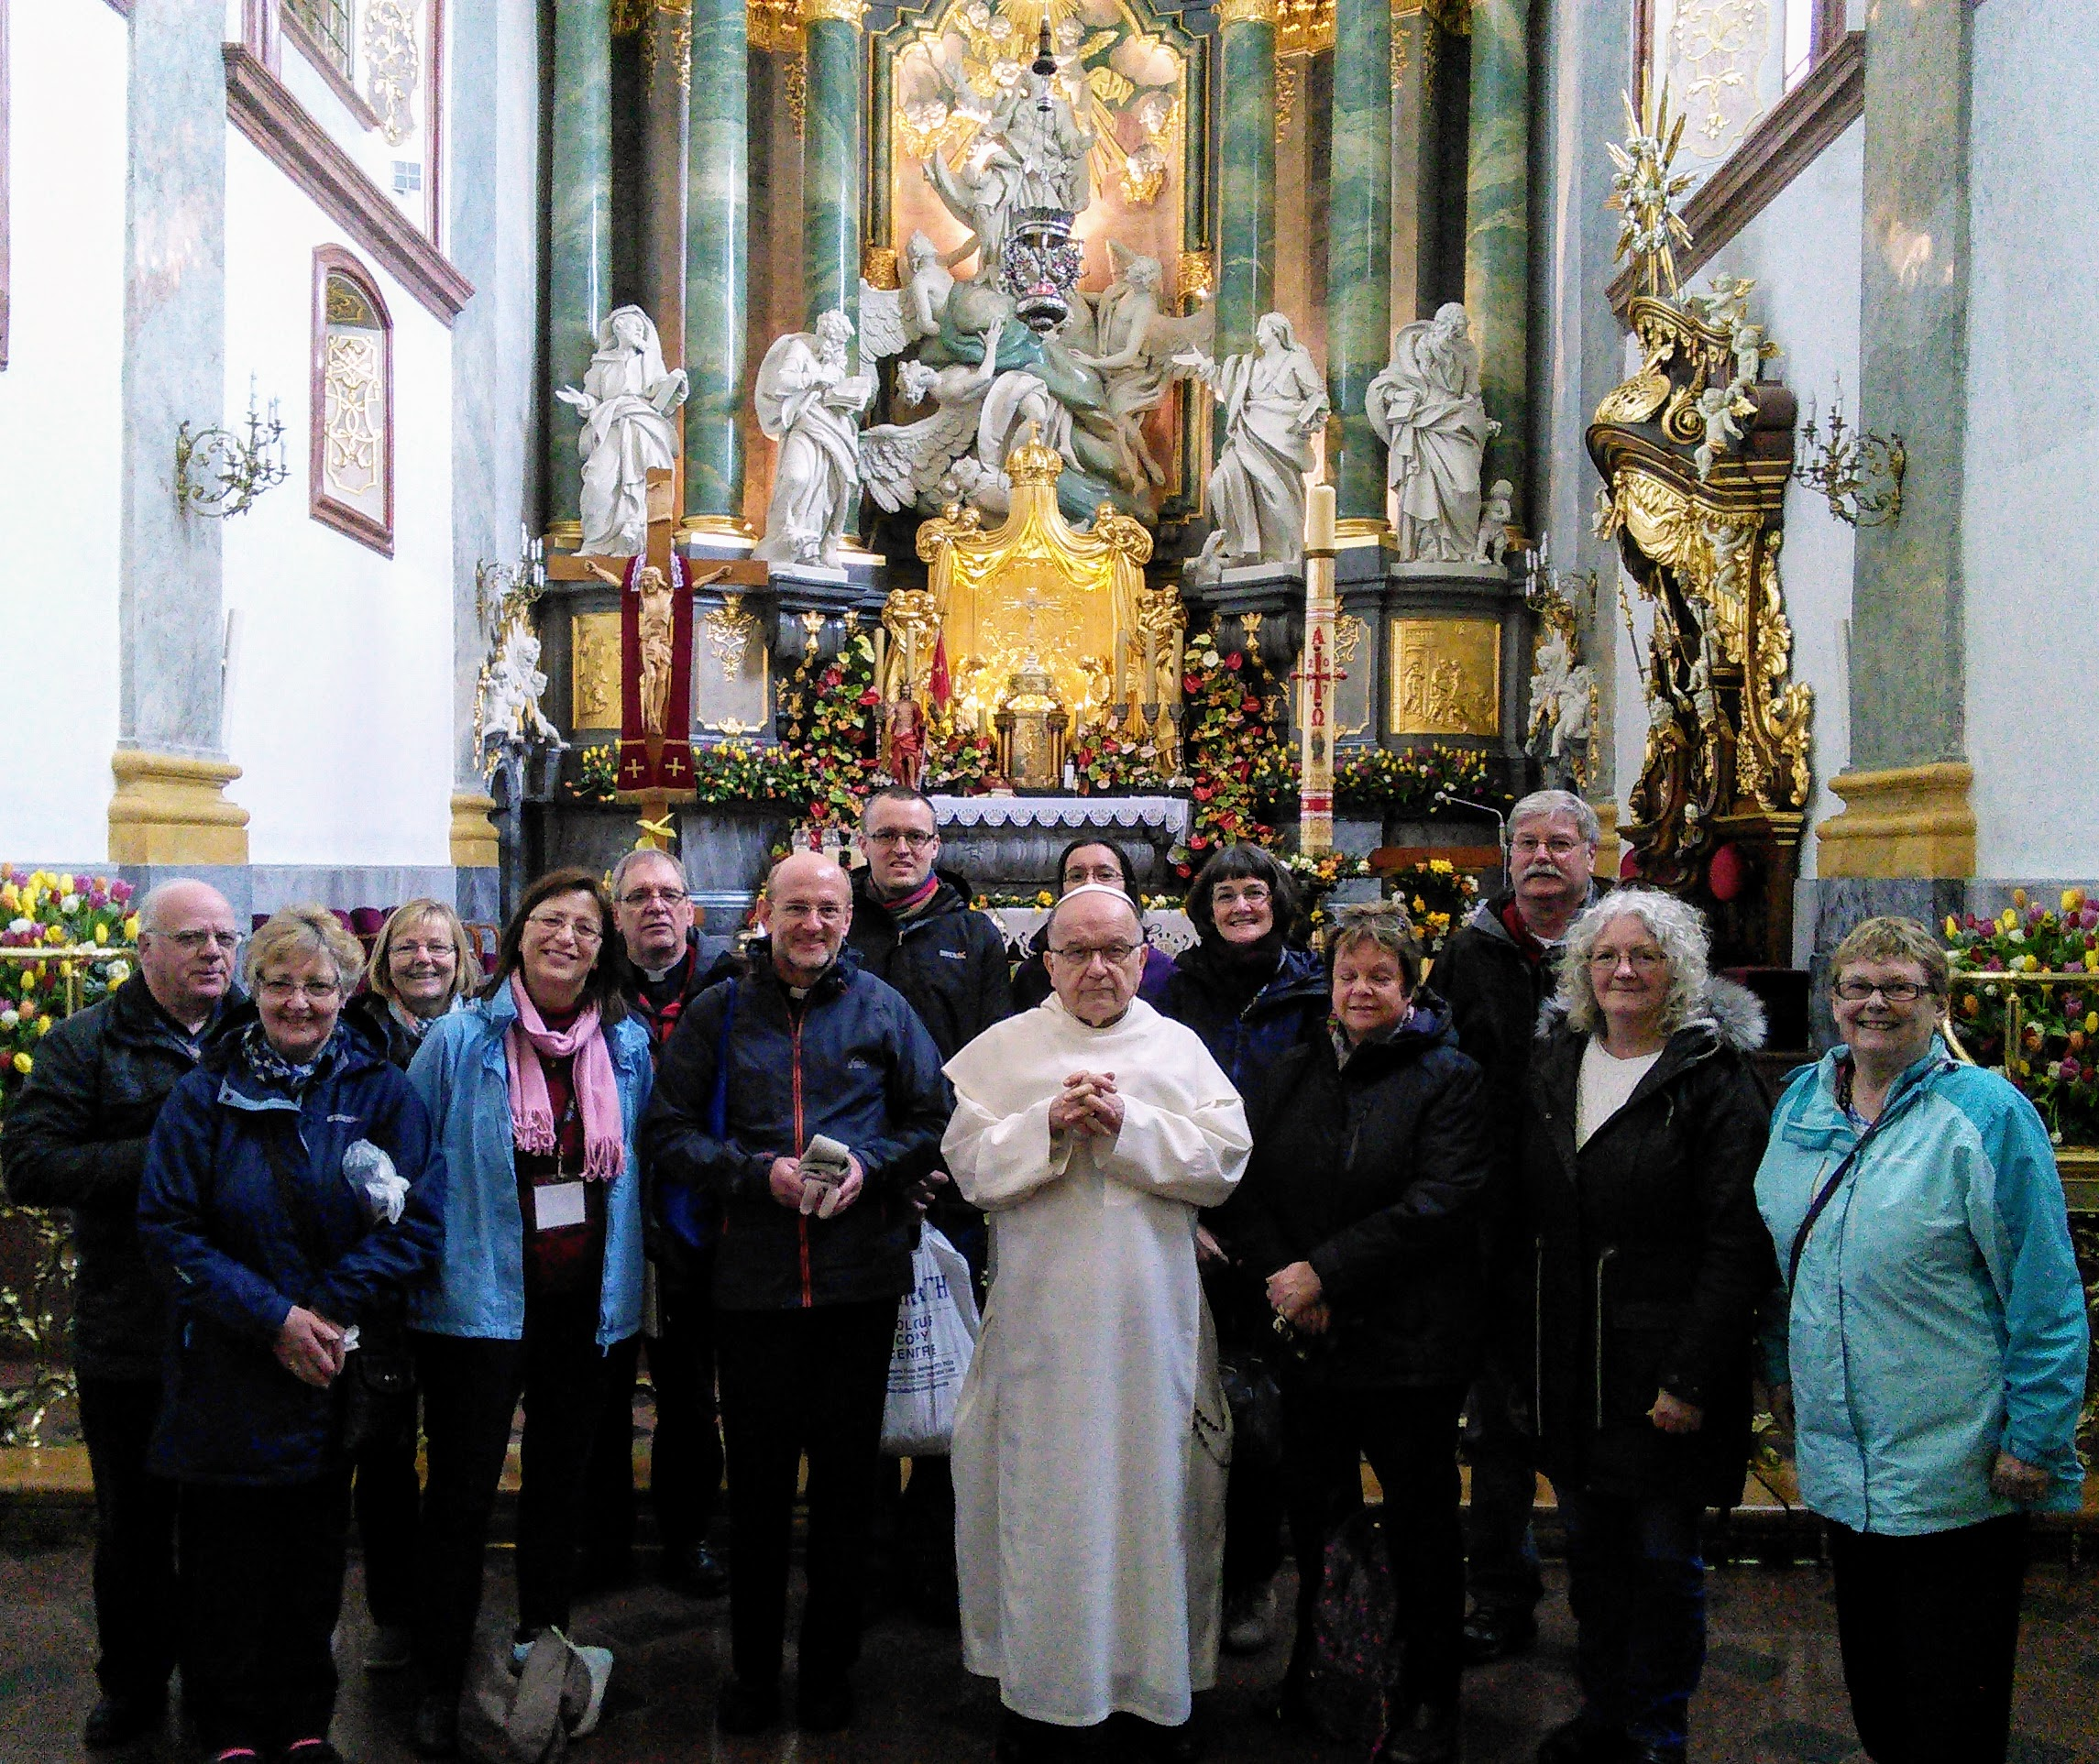 Our visit to Czestochowa, the national shrine to Our Lady.